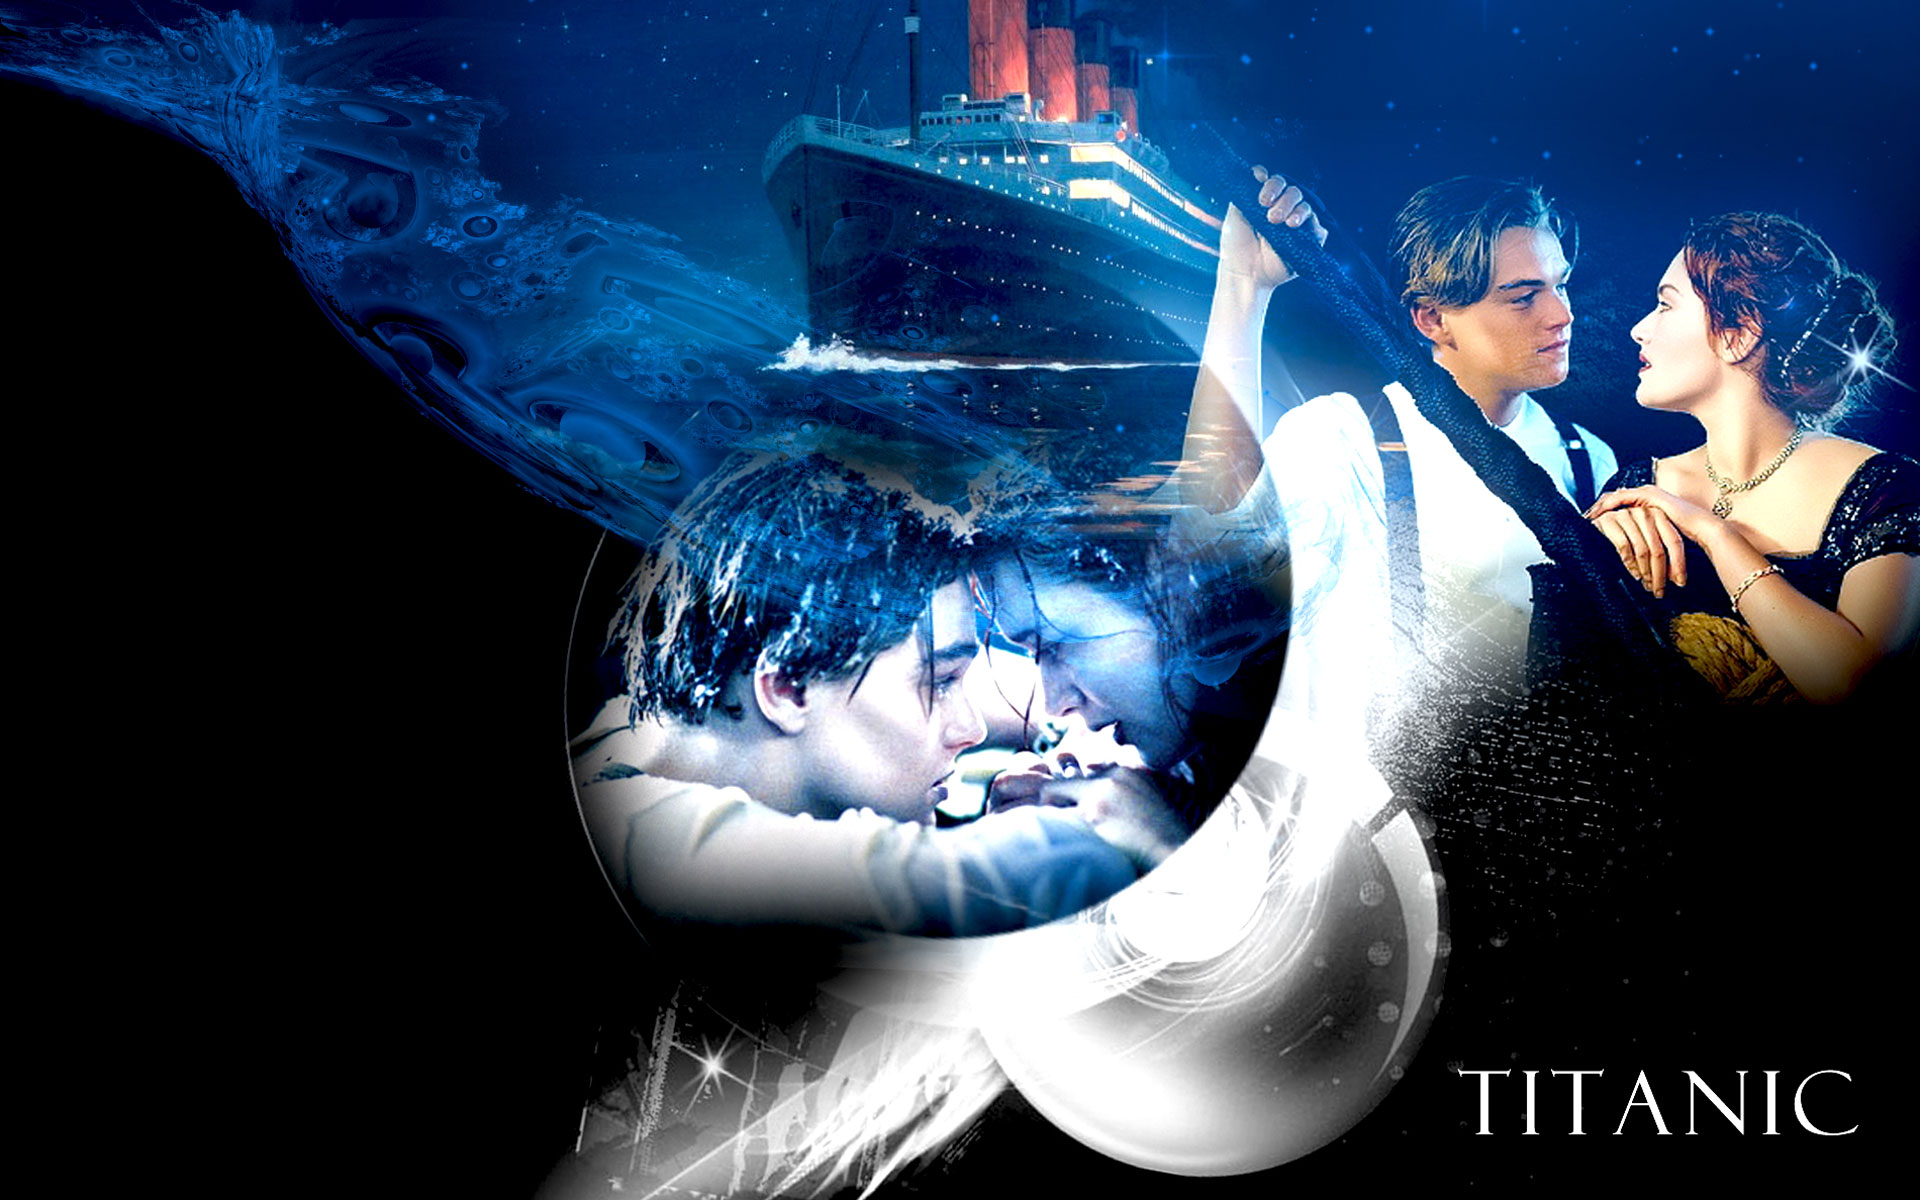 rose and jack titanic movie wallpaper wallpapers 1920x1200